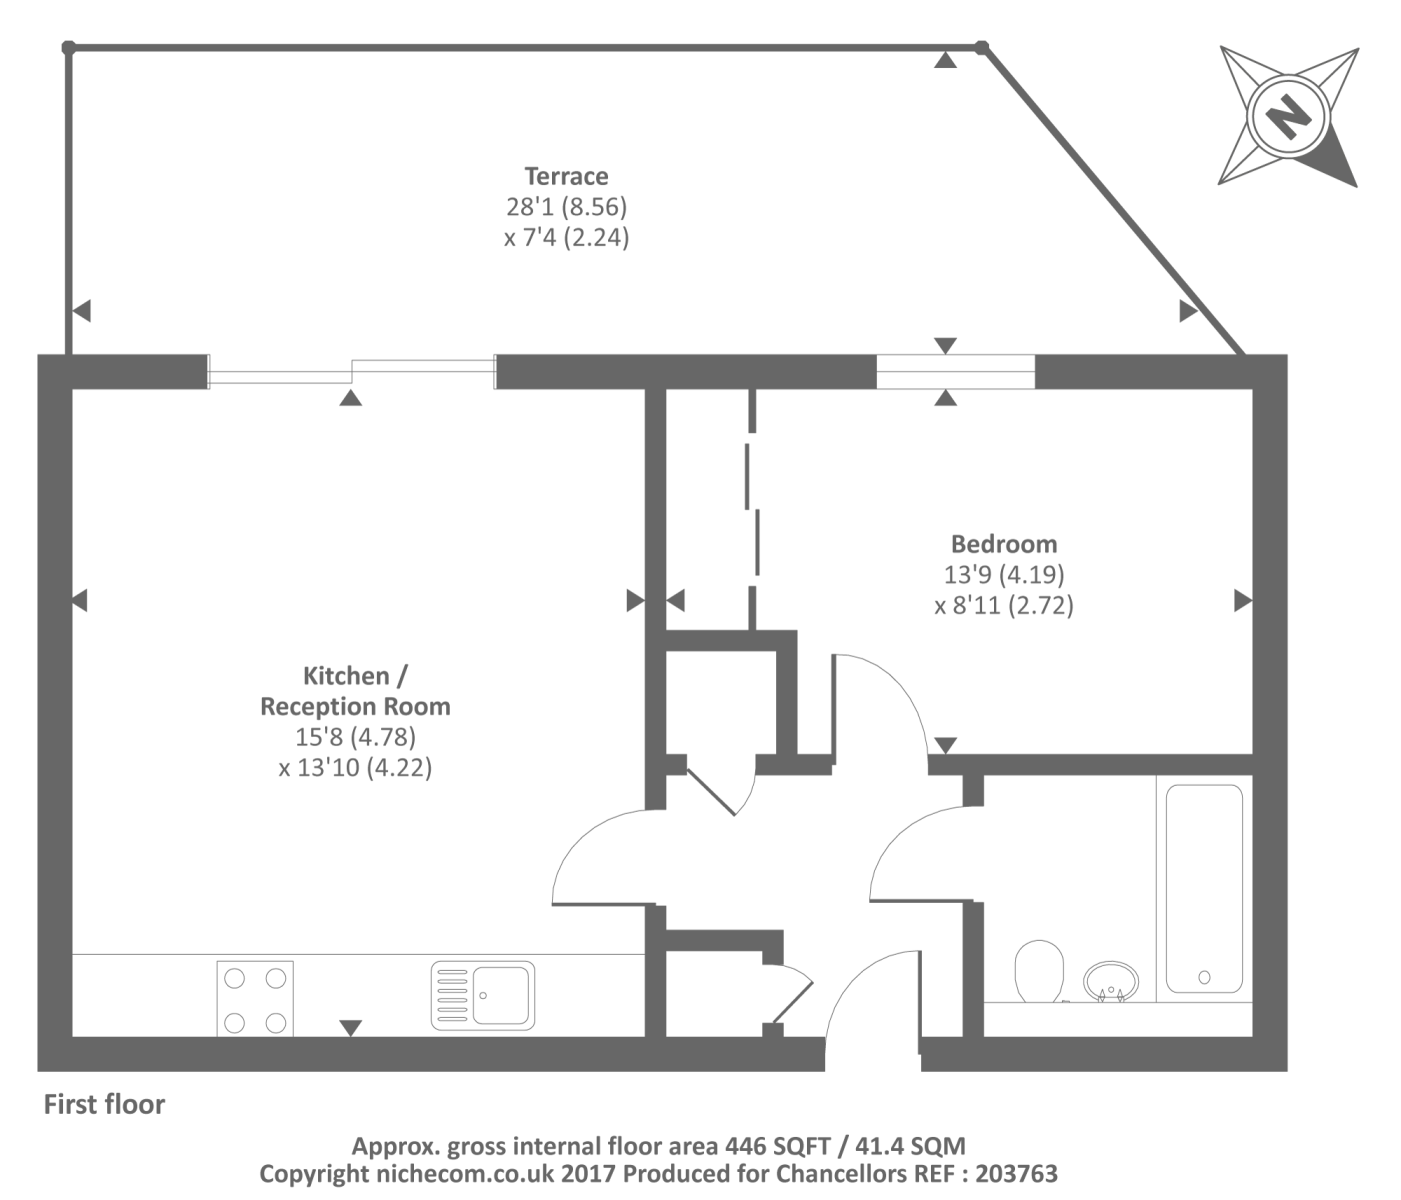 Nightingale house reading rg2 1 bedroom flat for sale for Reading a floor plan